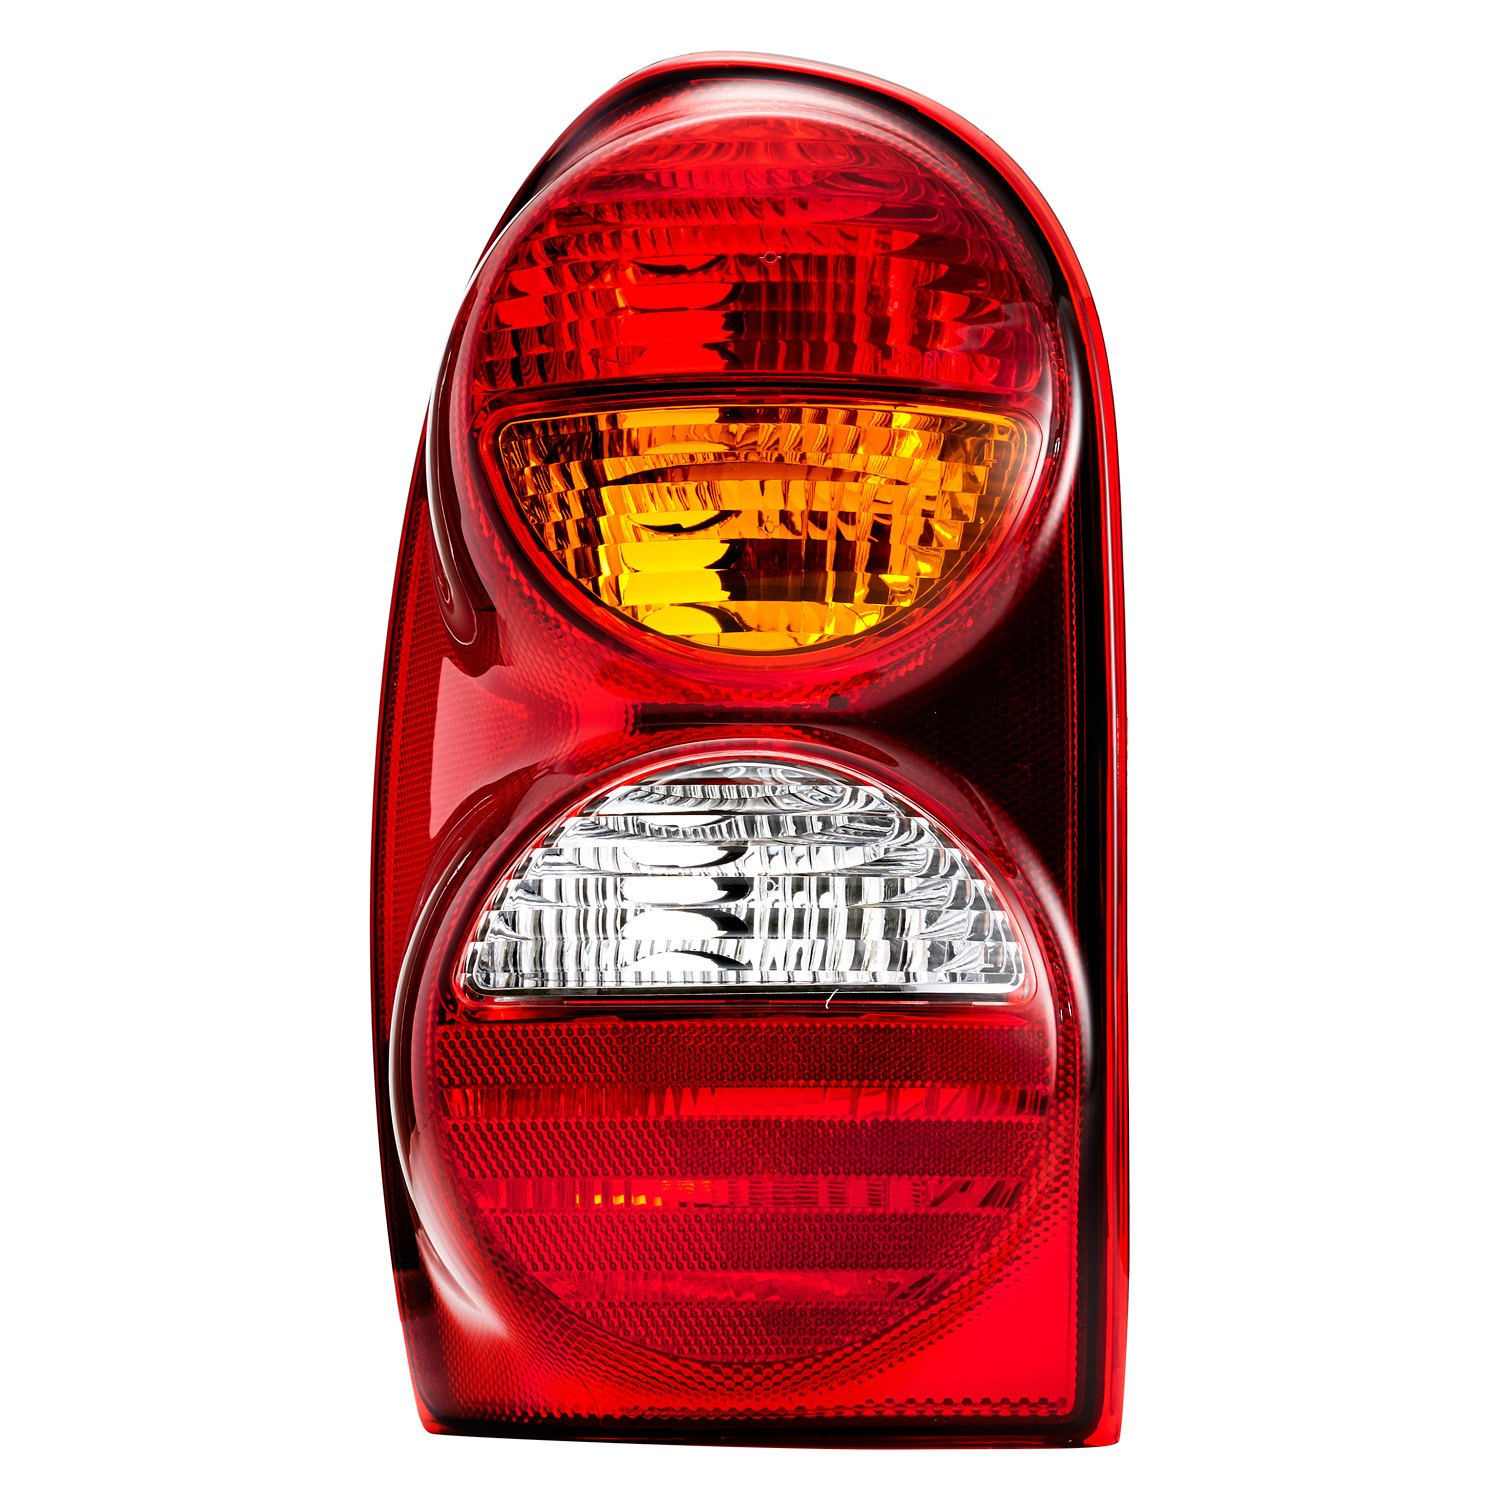 For Jeep Liberty 2002 2004 Tyc 11 5886 01 1 Driver Side Replacement Tail Light